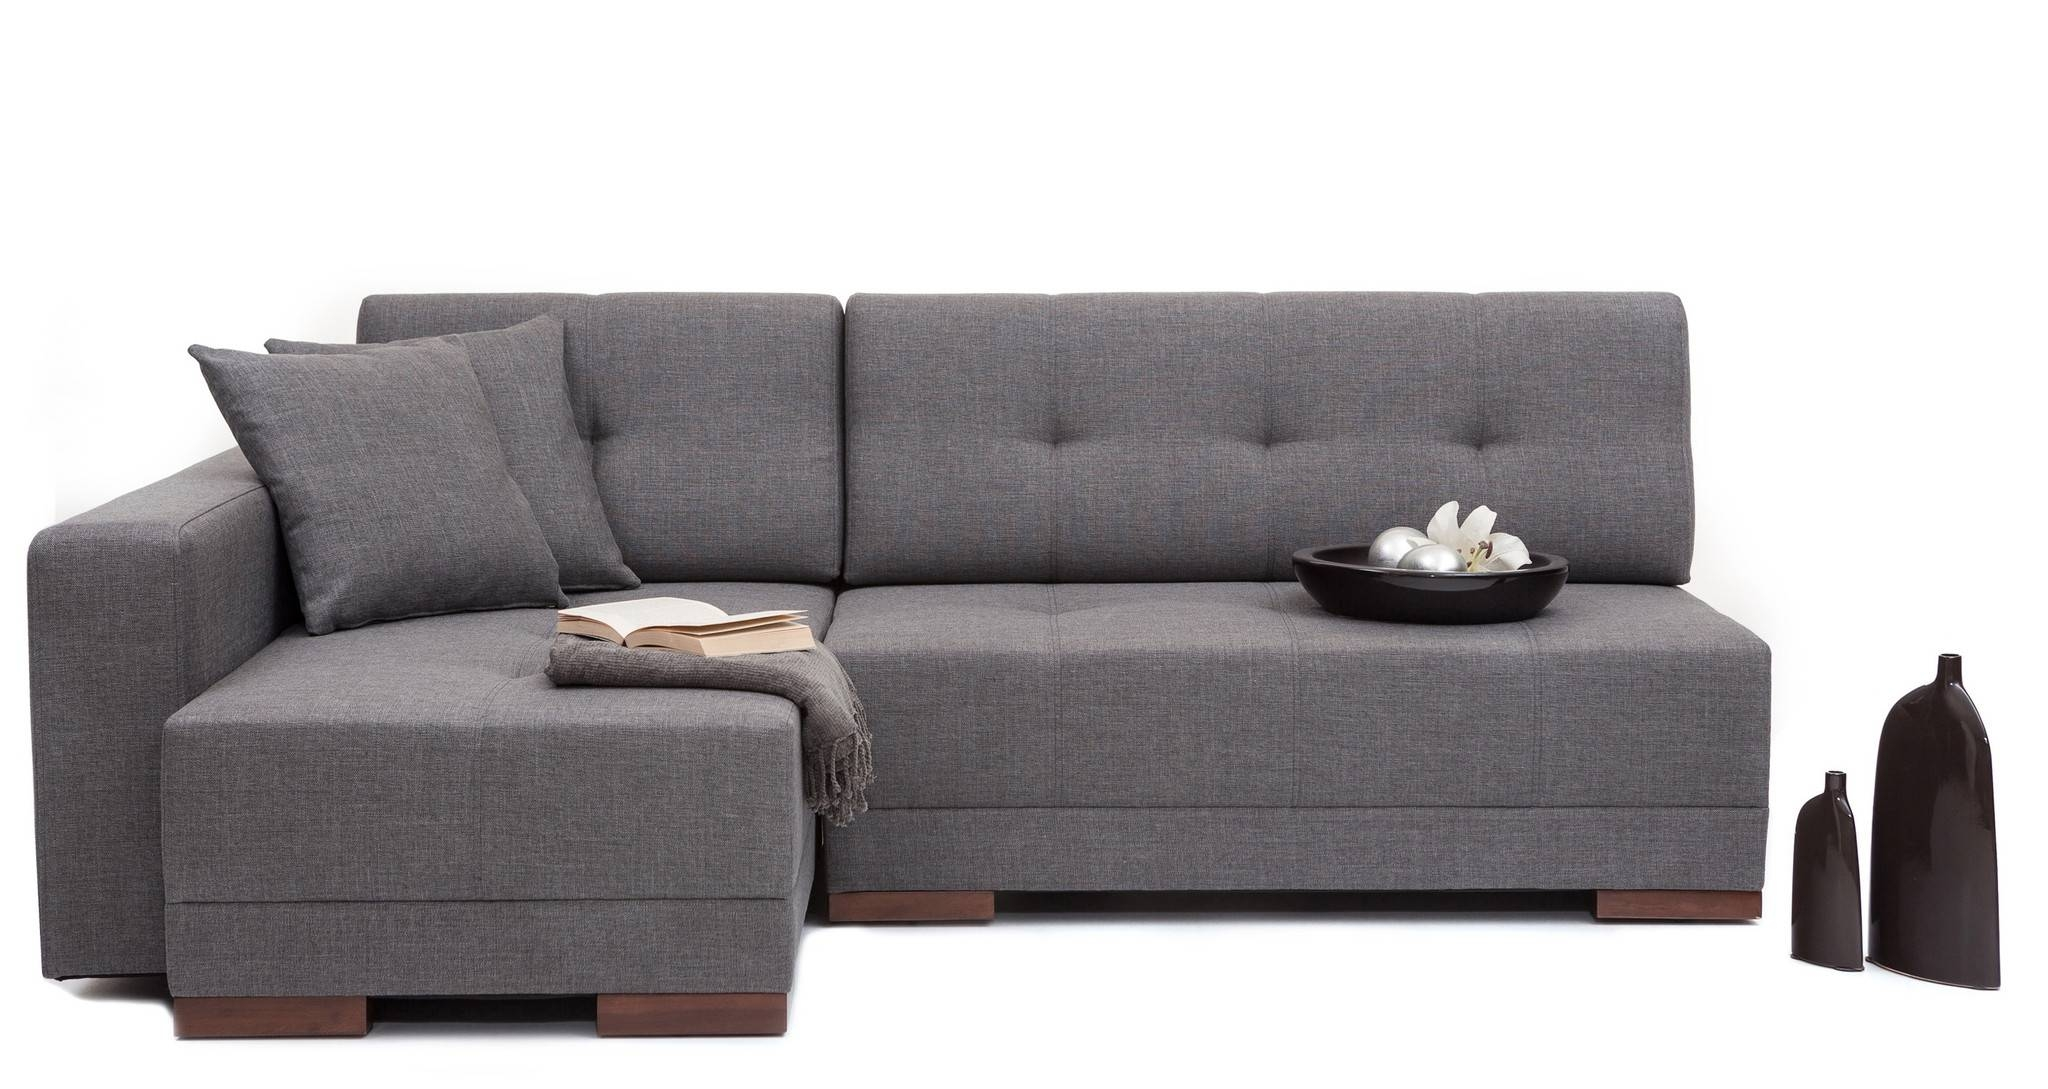 Sofas Center : Castro Convertible Sofa Striking Pictures throughout Castro Convertibles Sofa Beds (Image 12 of 15)